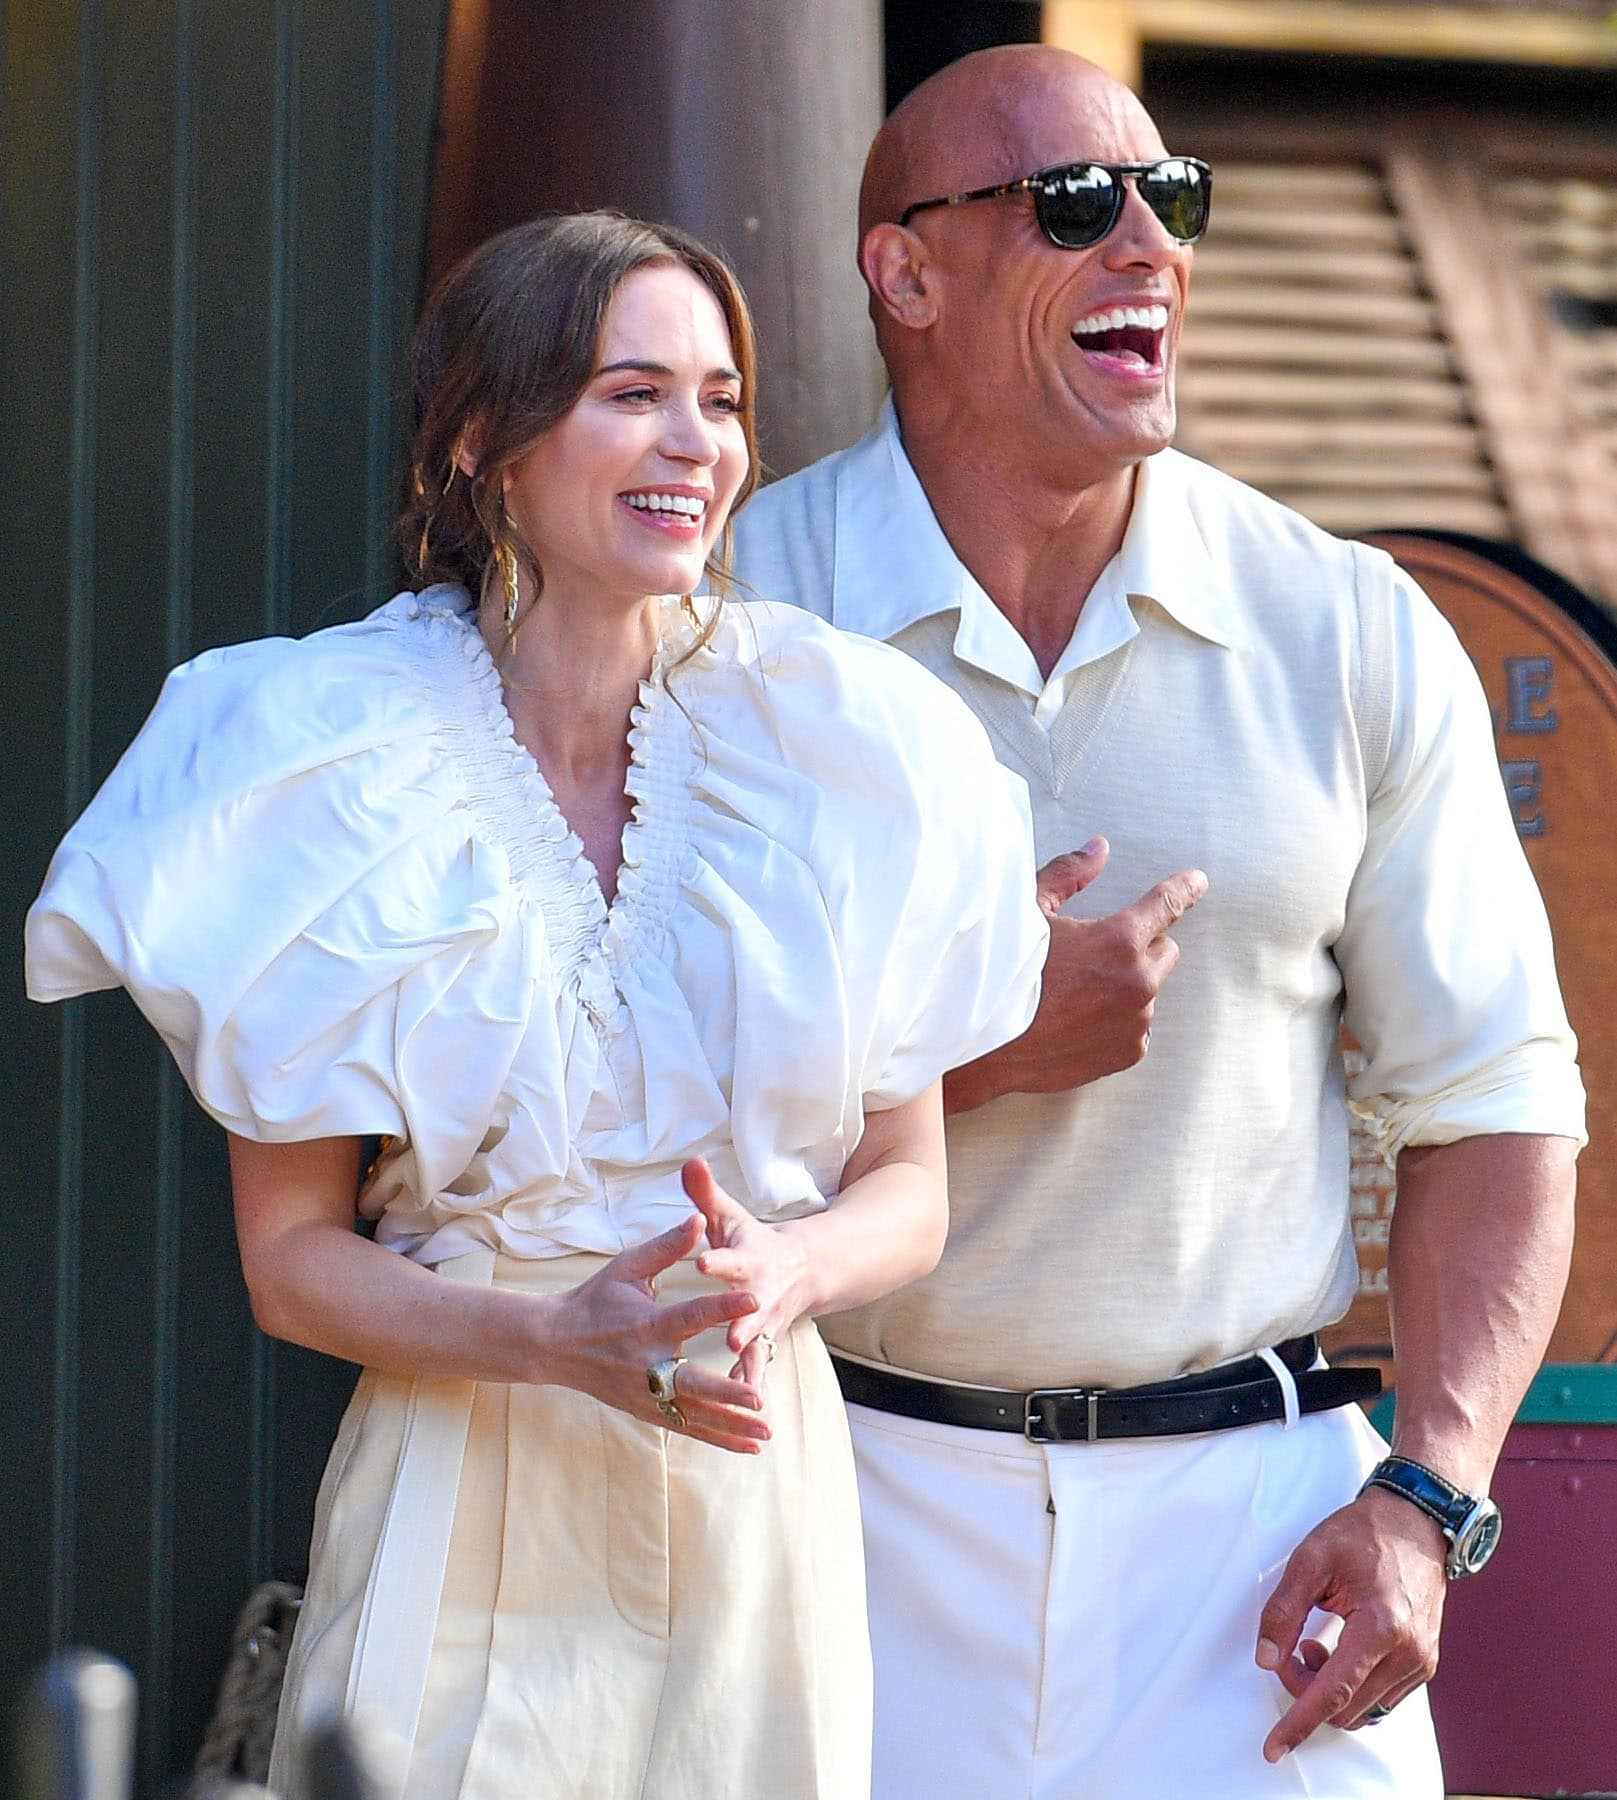 Emily Blunt reveals it's her first time riding the Jungle Cruise during the premiere of her namesake movie